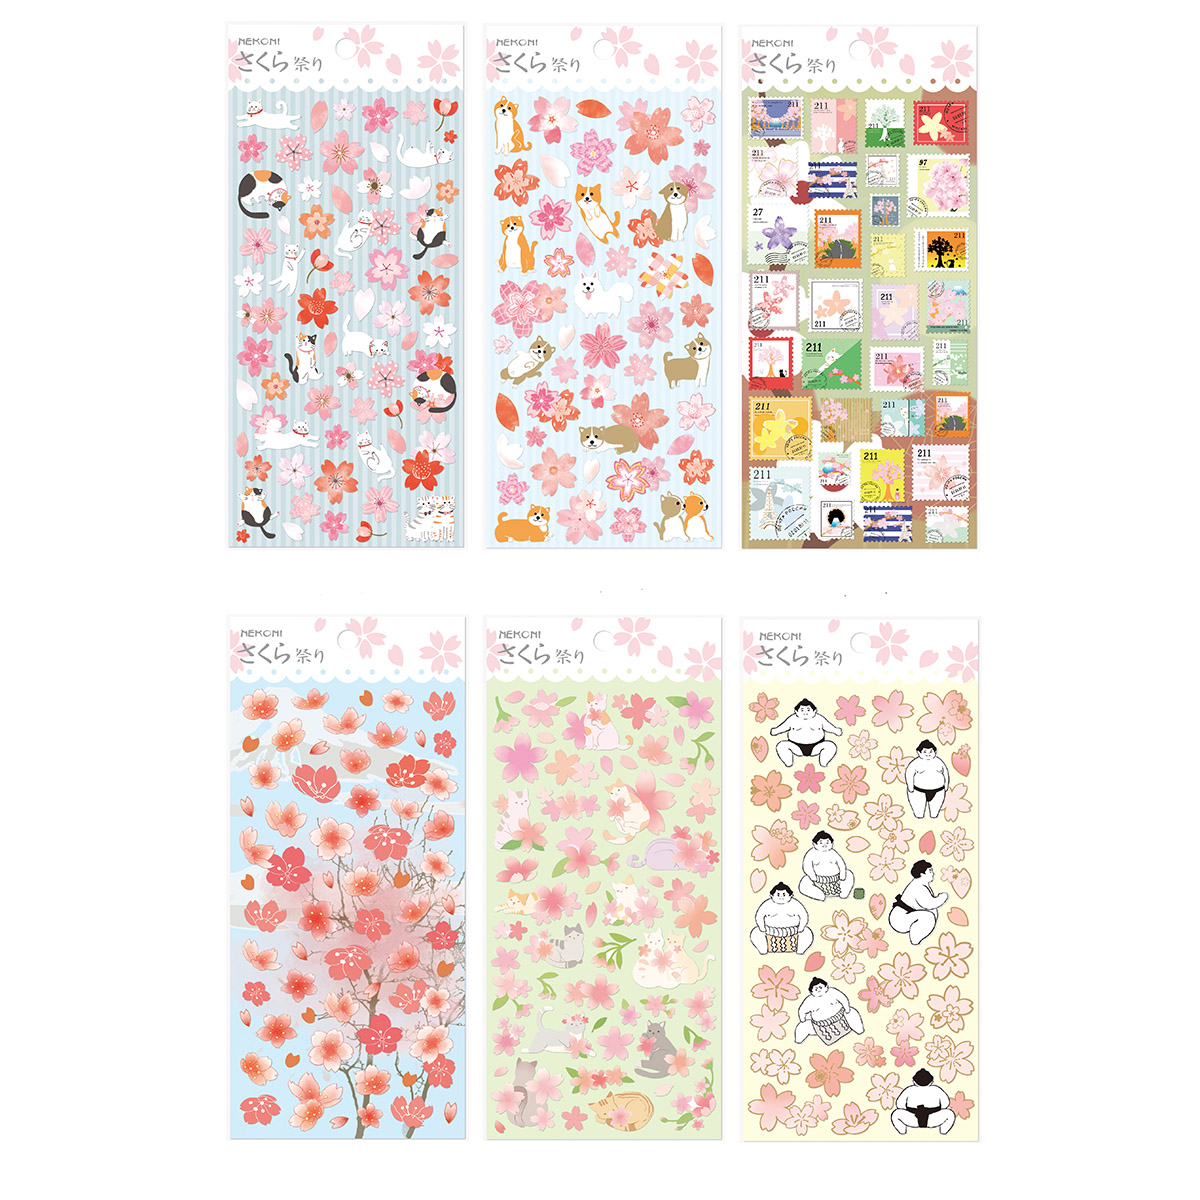 Romantic Cherry Blossoms Shiba Decorative Stationery Stickers Scrapbooking DIY Diary Album Stick special romantic small sticker diy with q lia stickers stick stick 70 page 5